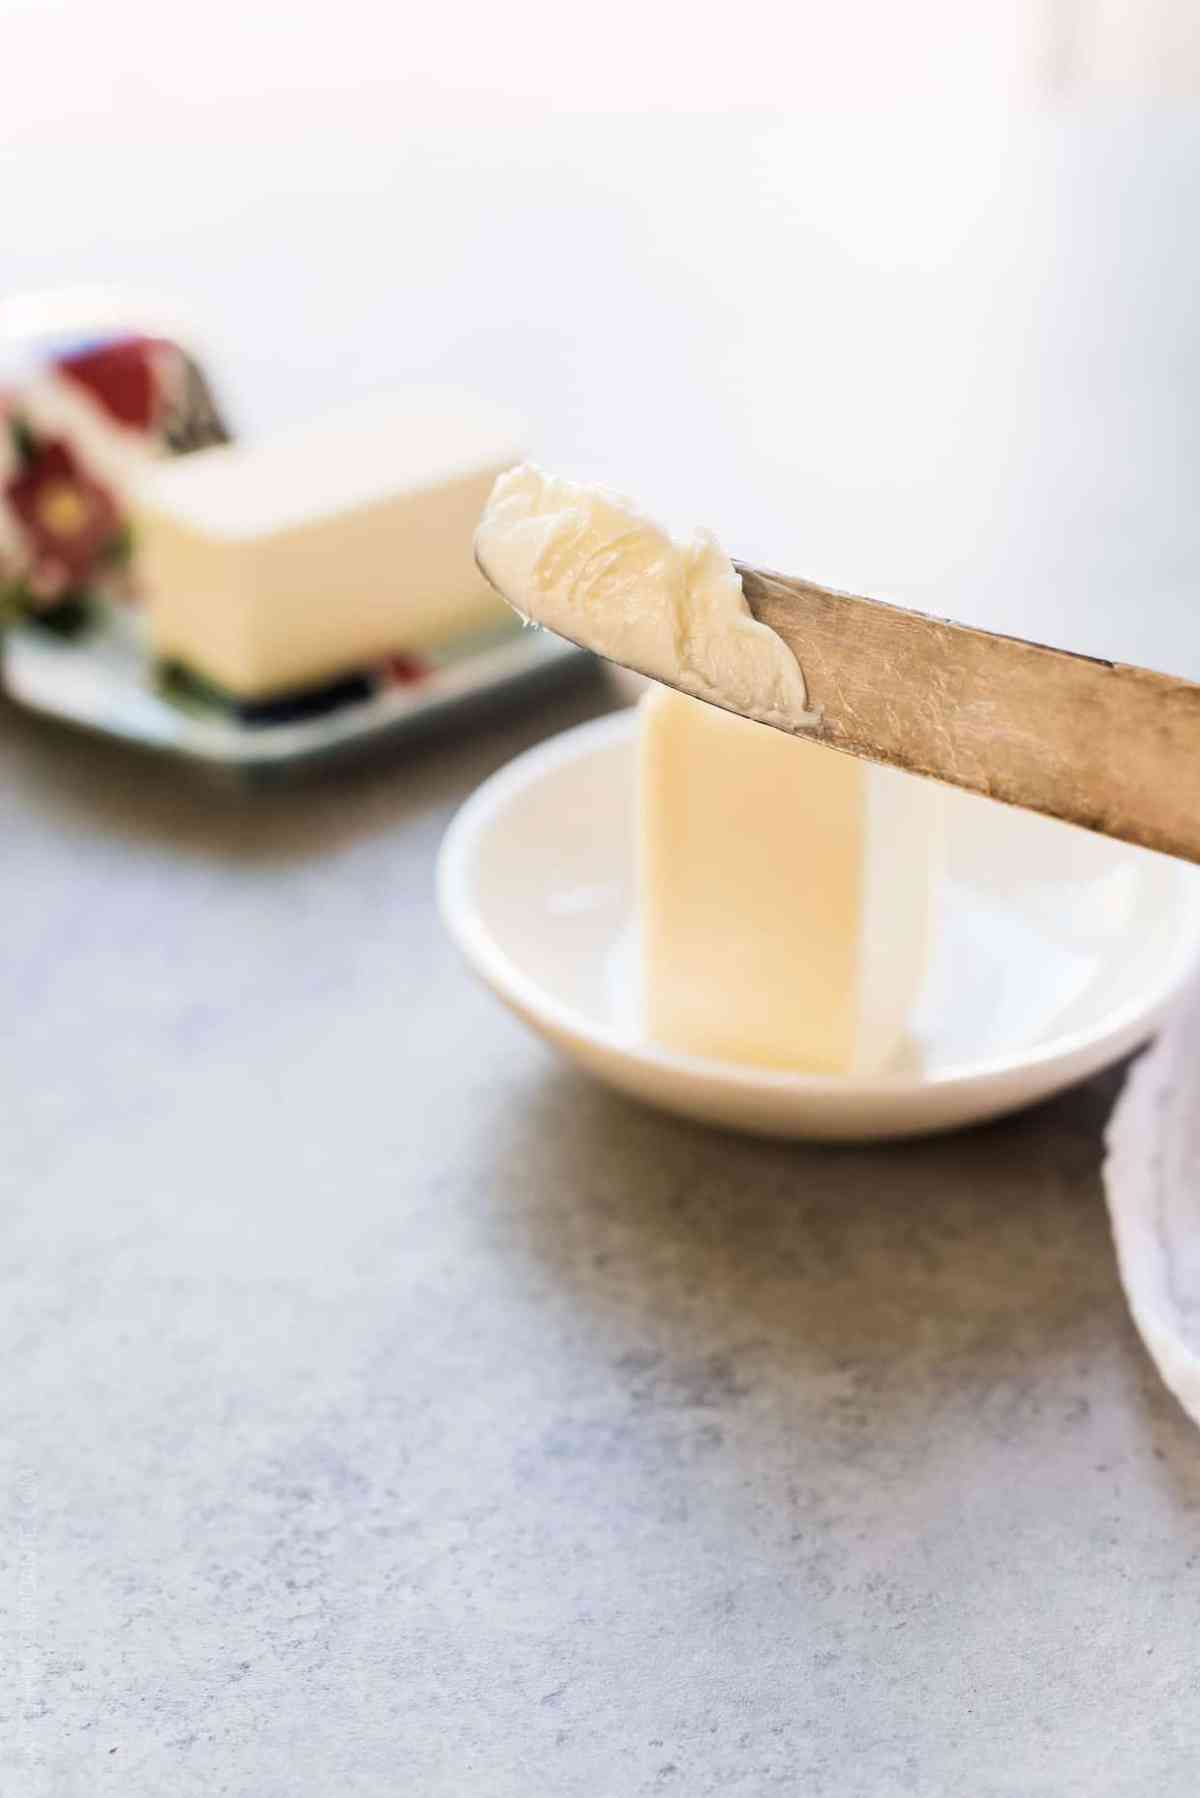 Butter knife with softened butter on it and a stick of butter in the background.